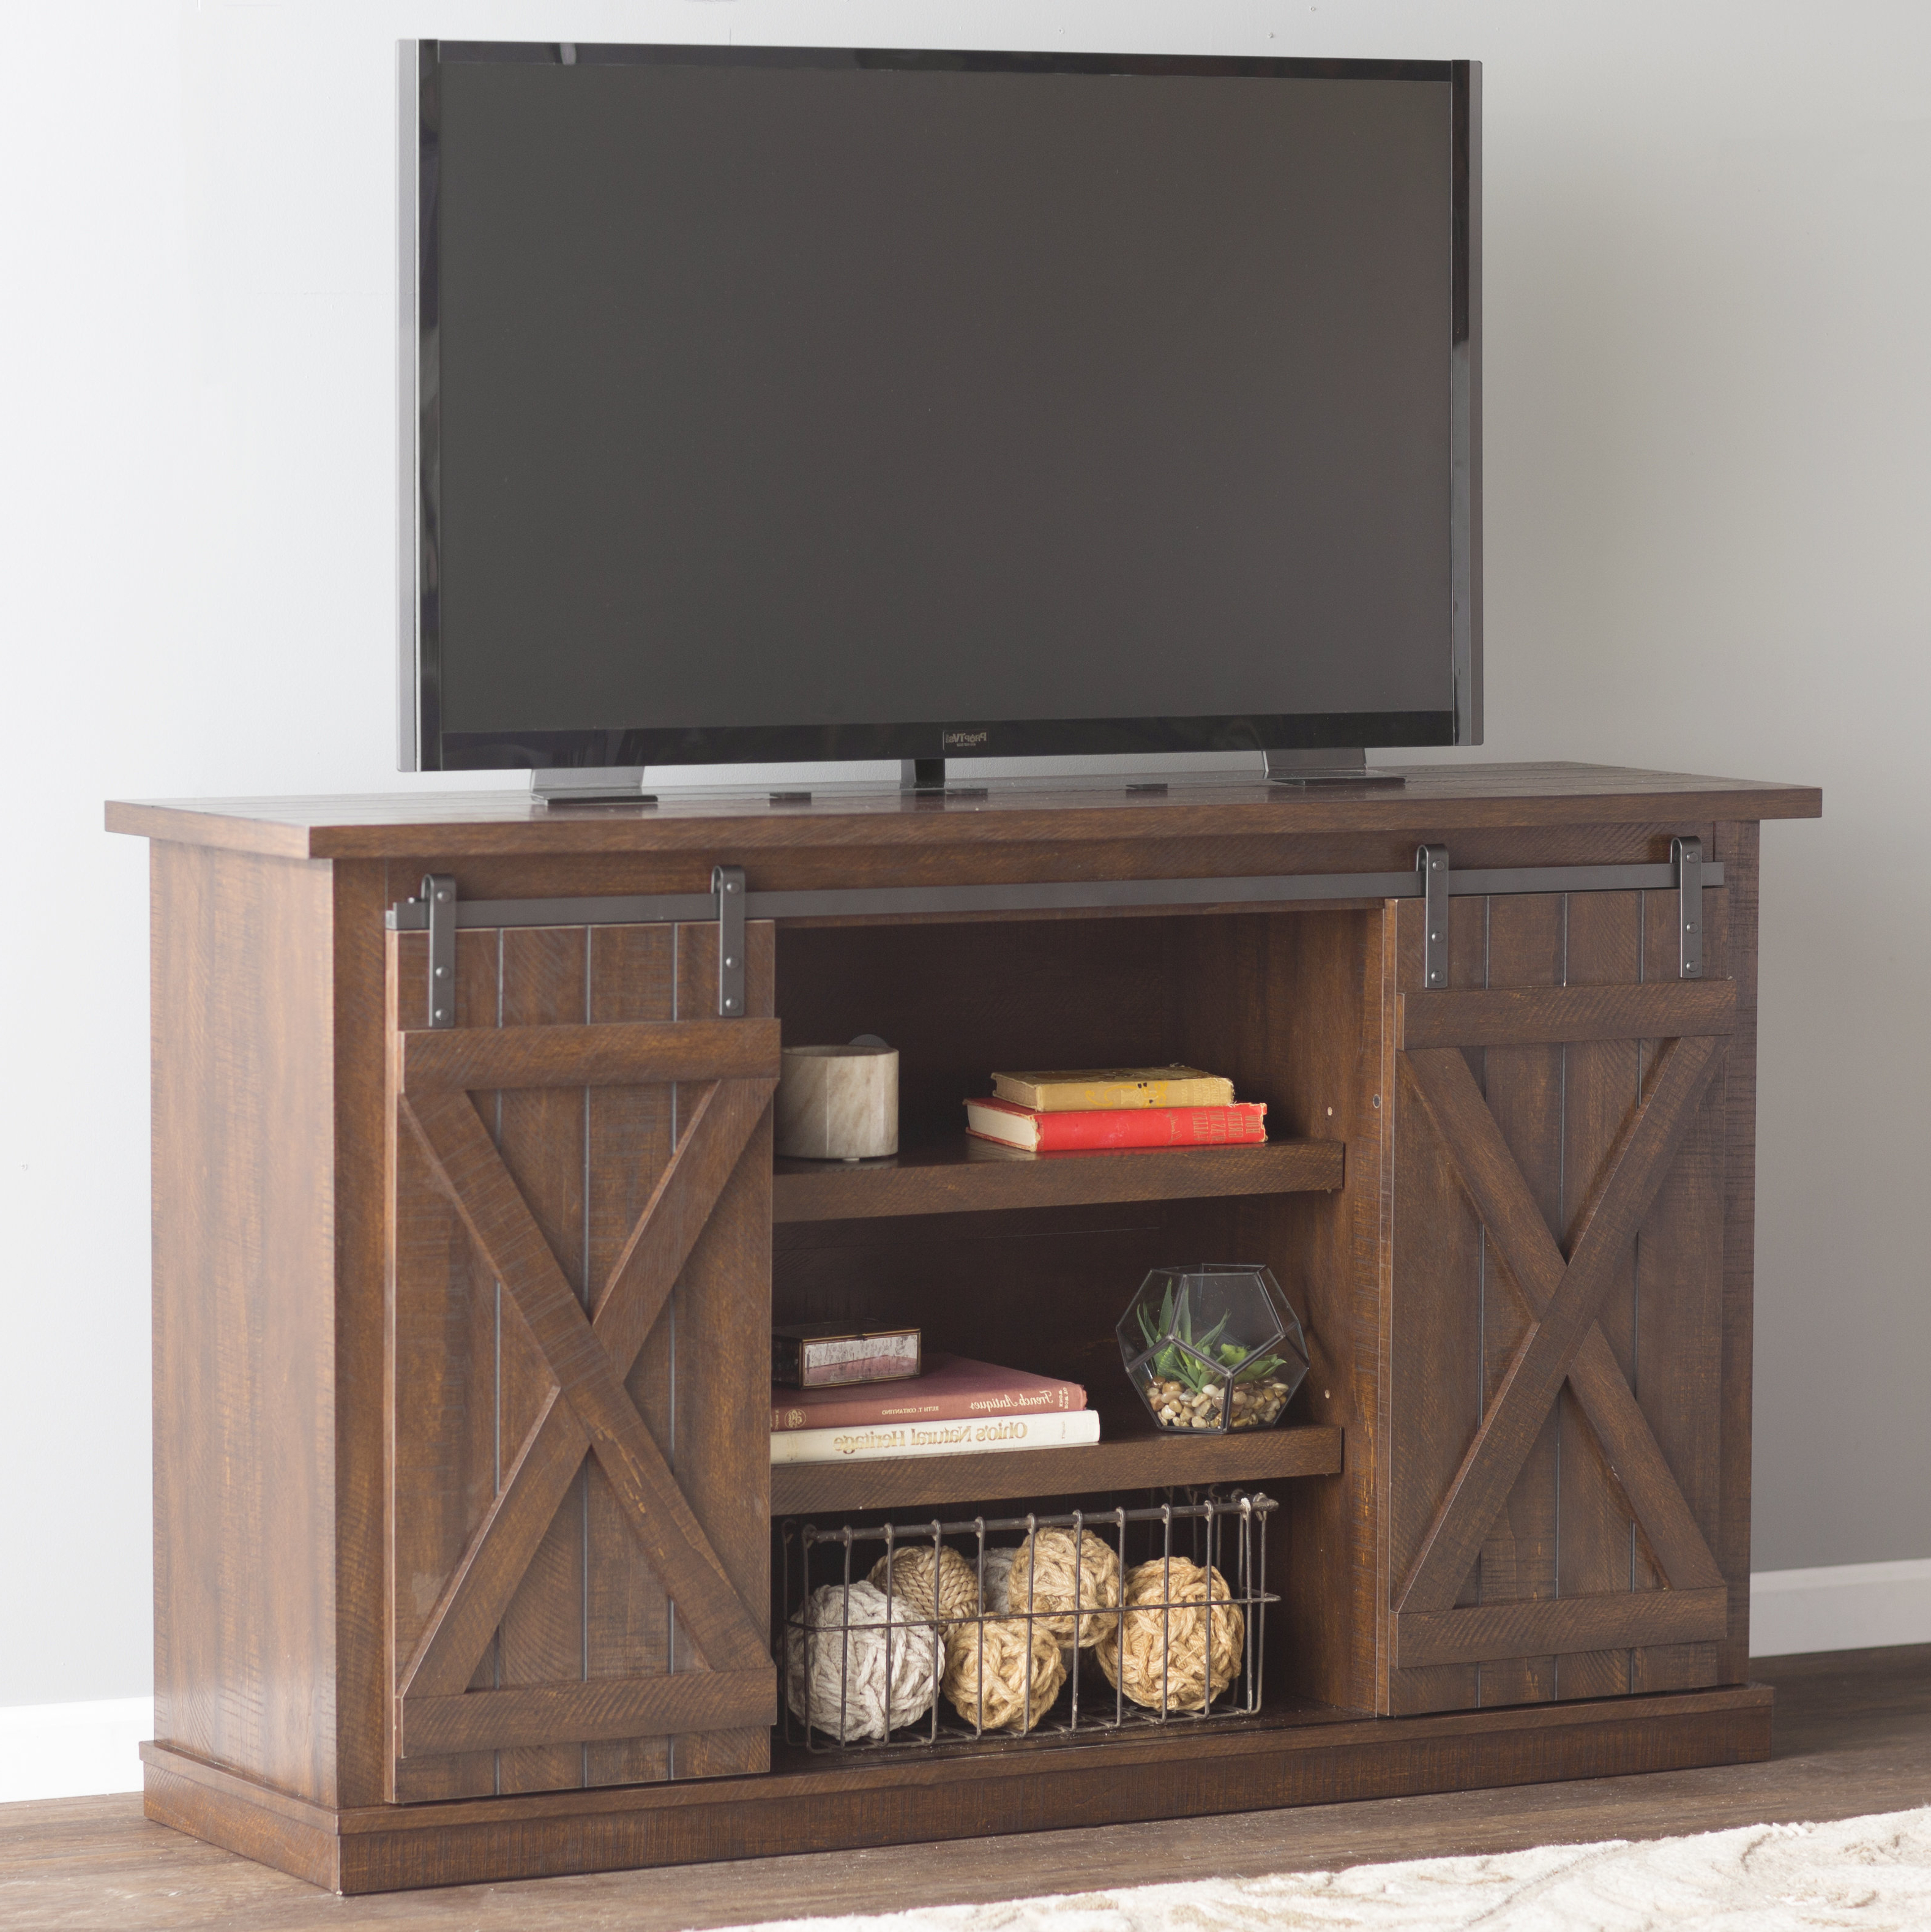 Well Known Rustic Wood Tv Cabinets Pertaining To Rustic Tv Stands & Entertainment Centers You'll Love (View 13 of 20)